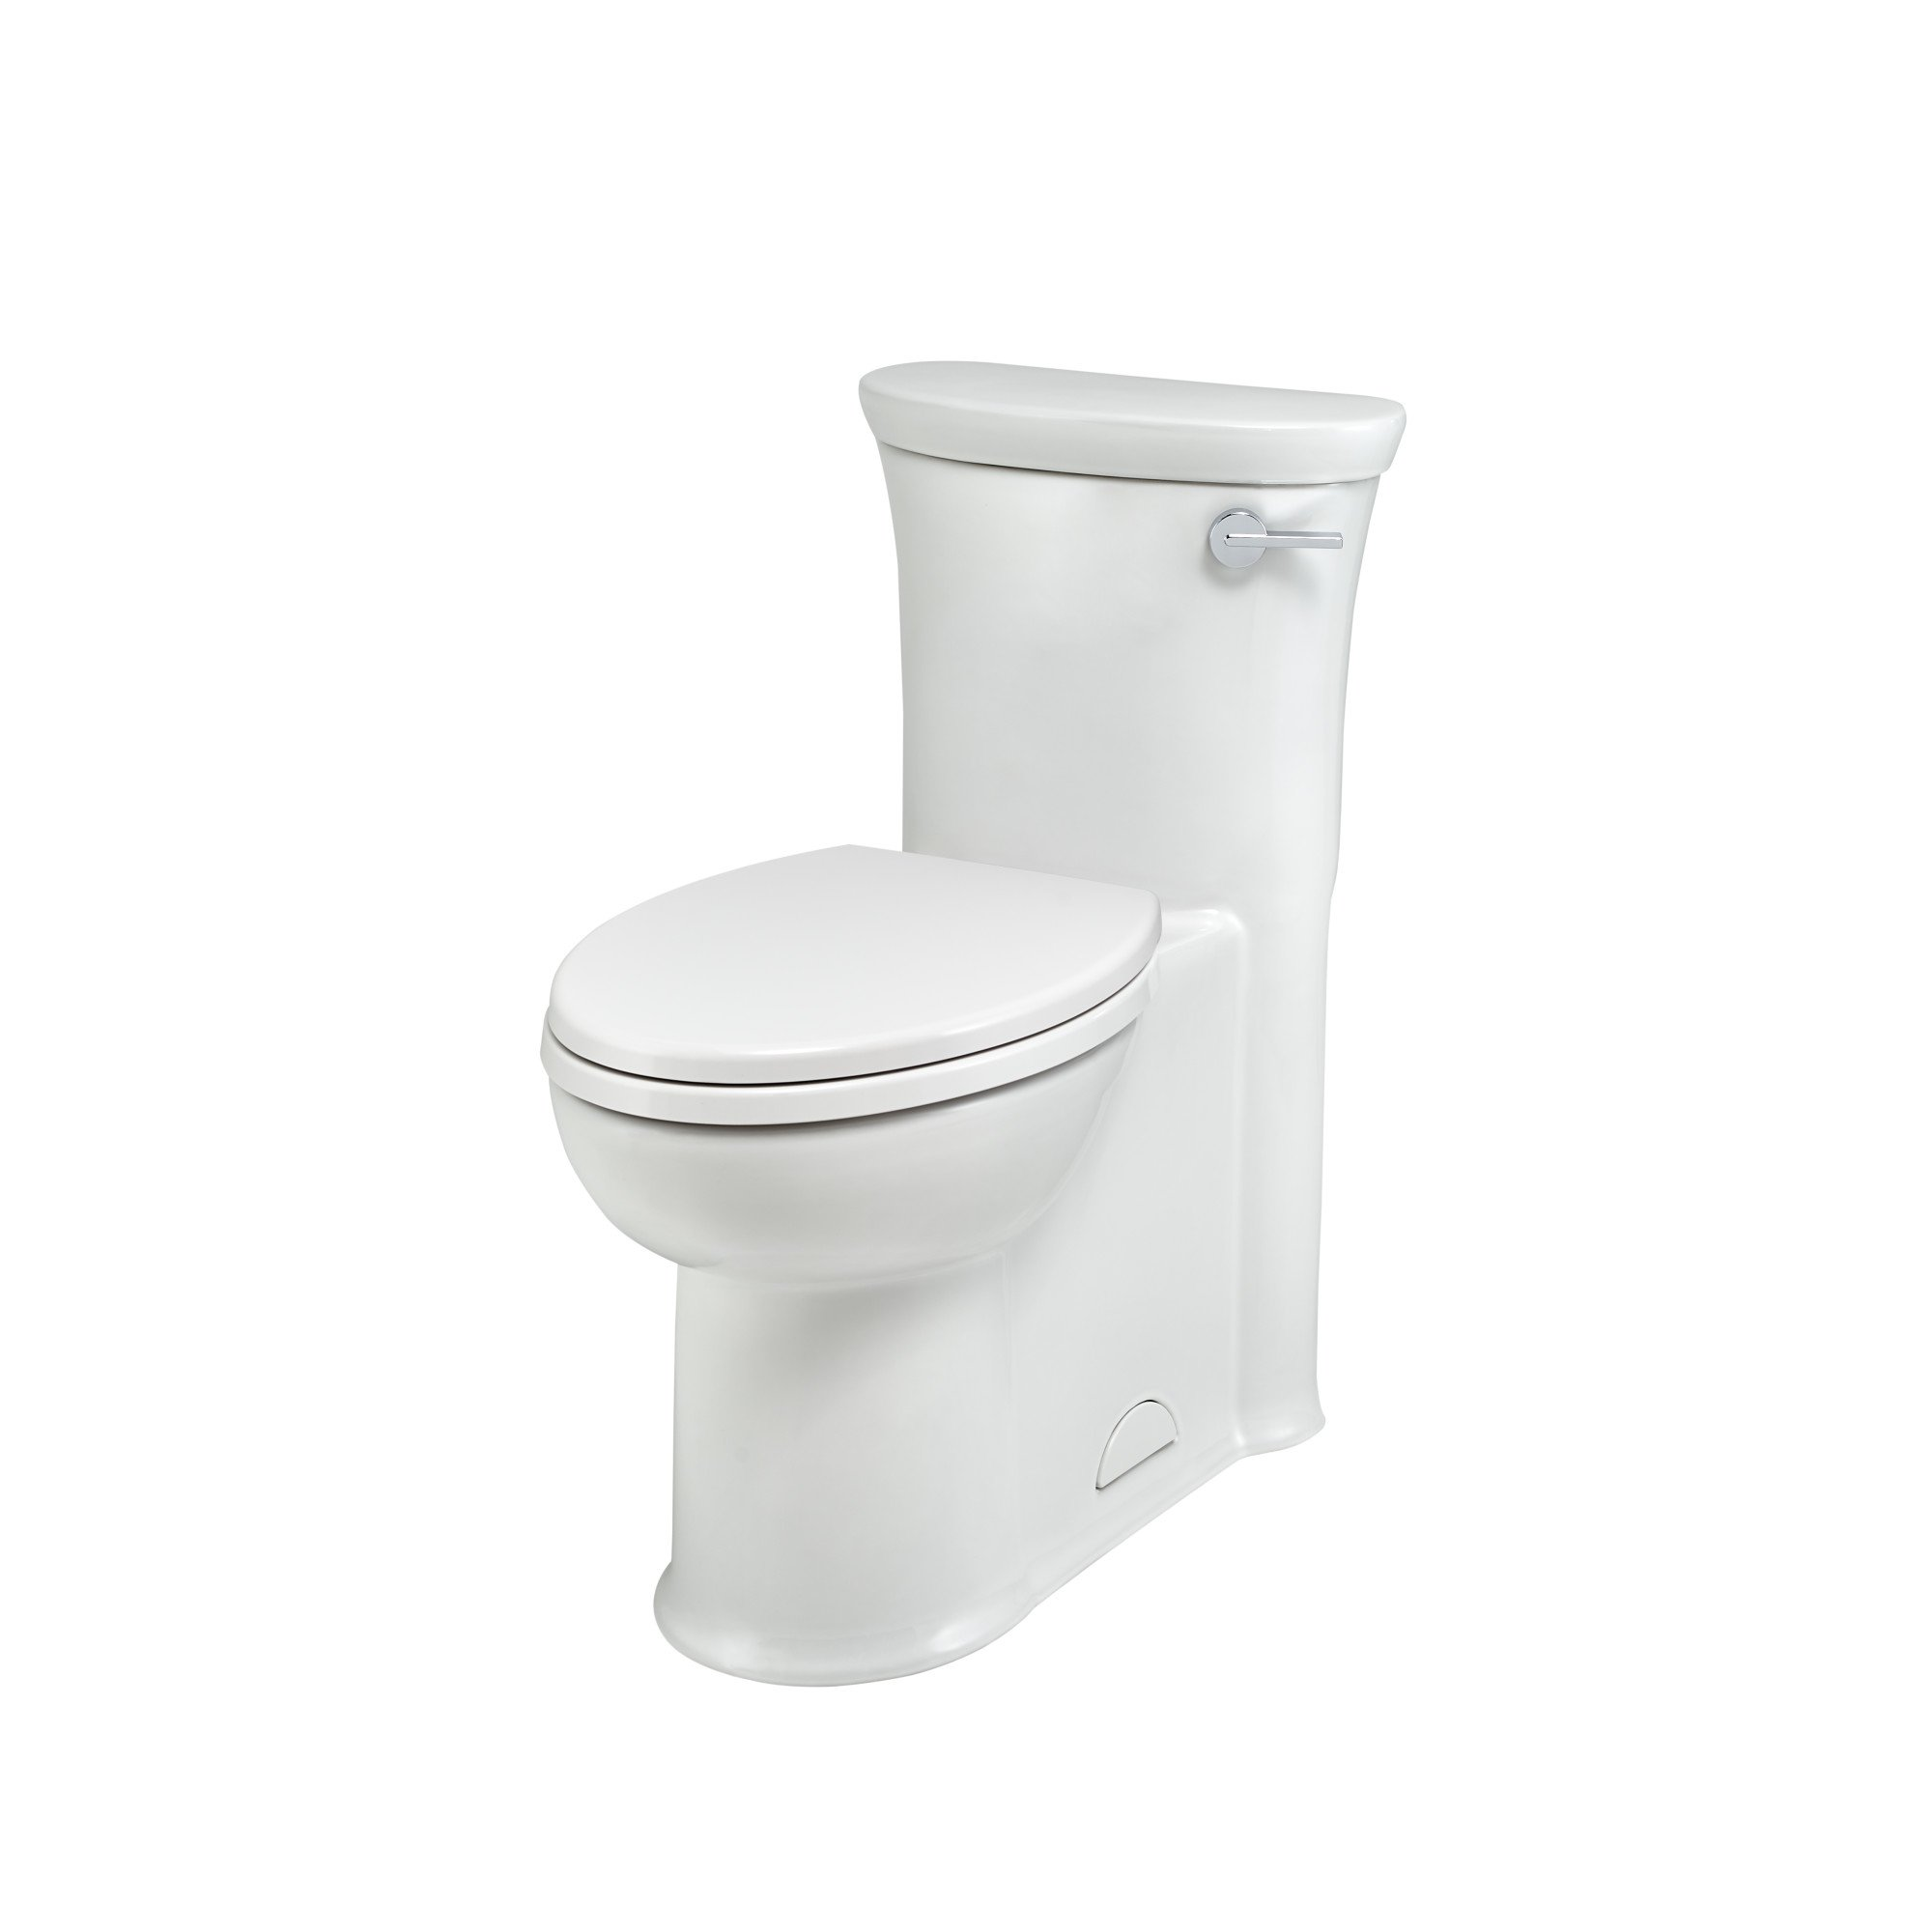 American Standard 2786813.020 Tropic Right Height Elongated One-Piece Toilet with Seat, White